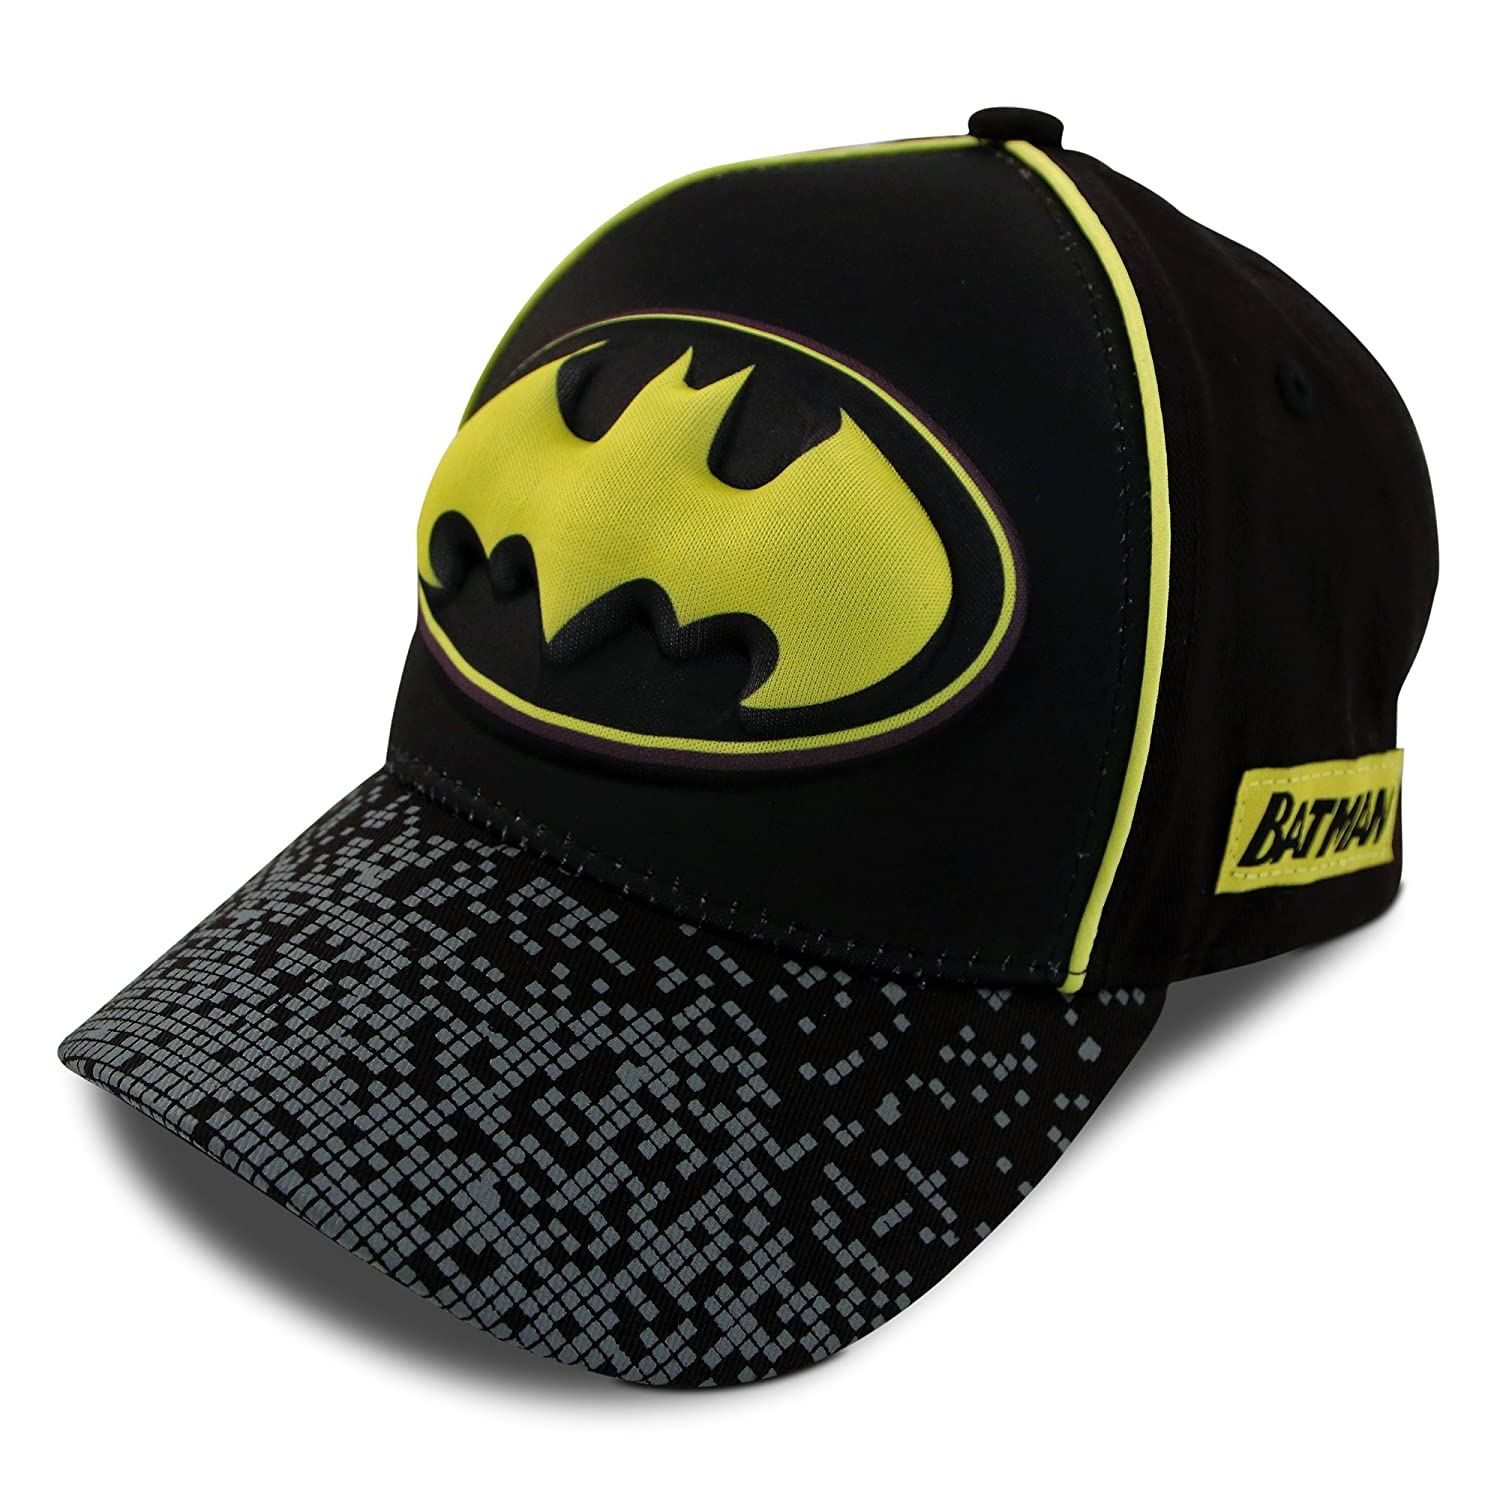 DC Comics Little Boys Assorted Superhero Designs 3D Pop Cotton Baseball Cap, Age 2-7 ABG Accessories